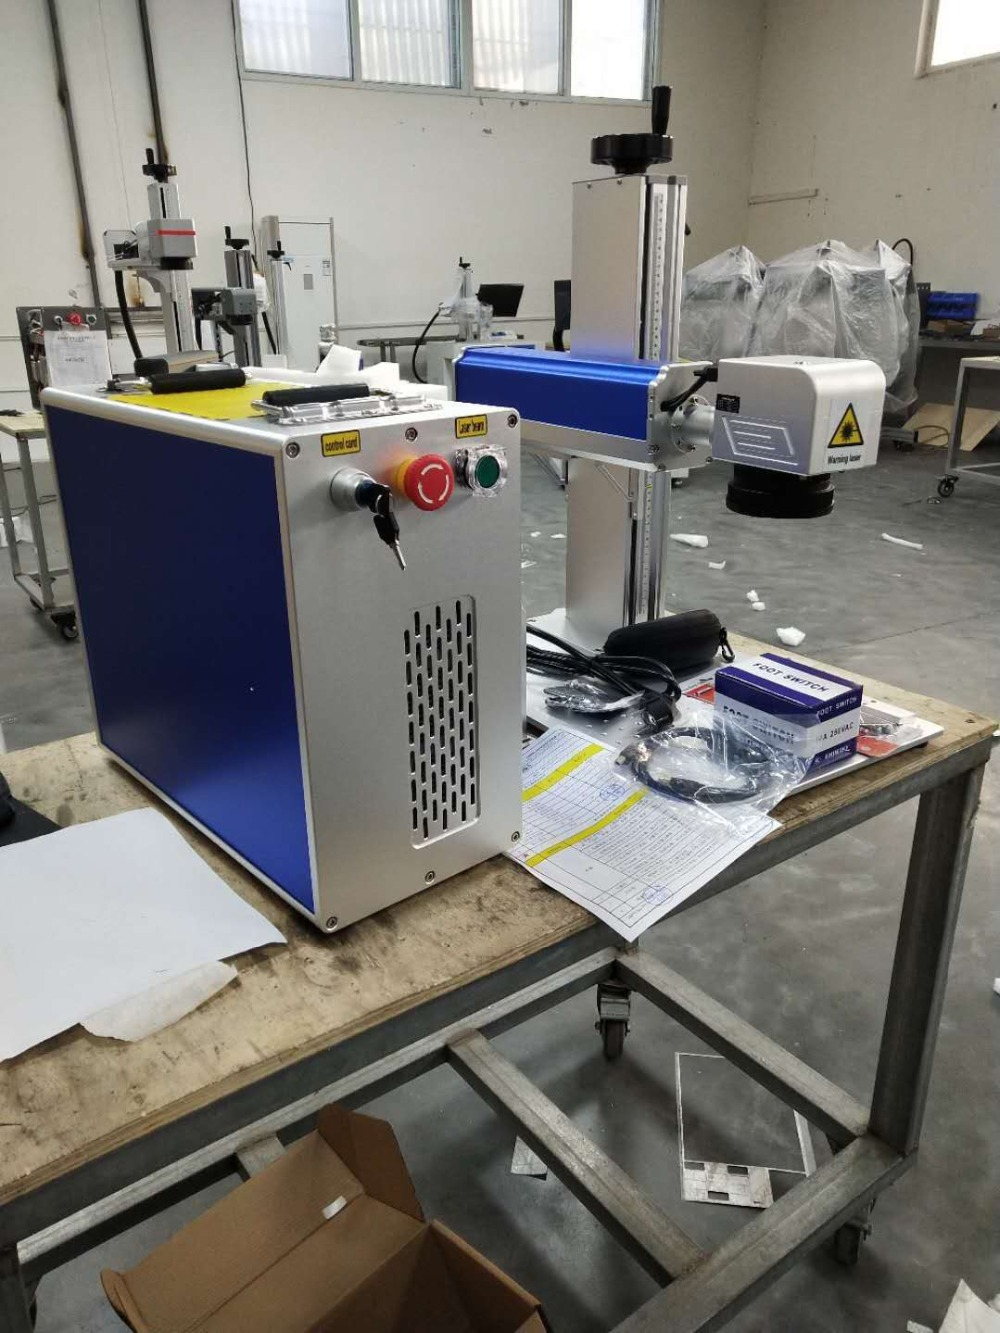 30W MAX Raycus And JPT Fiber Laser Marking Machine With 200-200mm Working Table